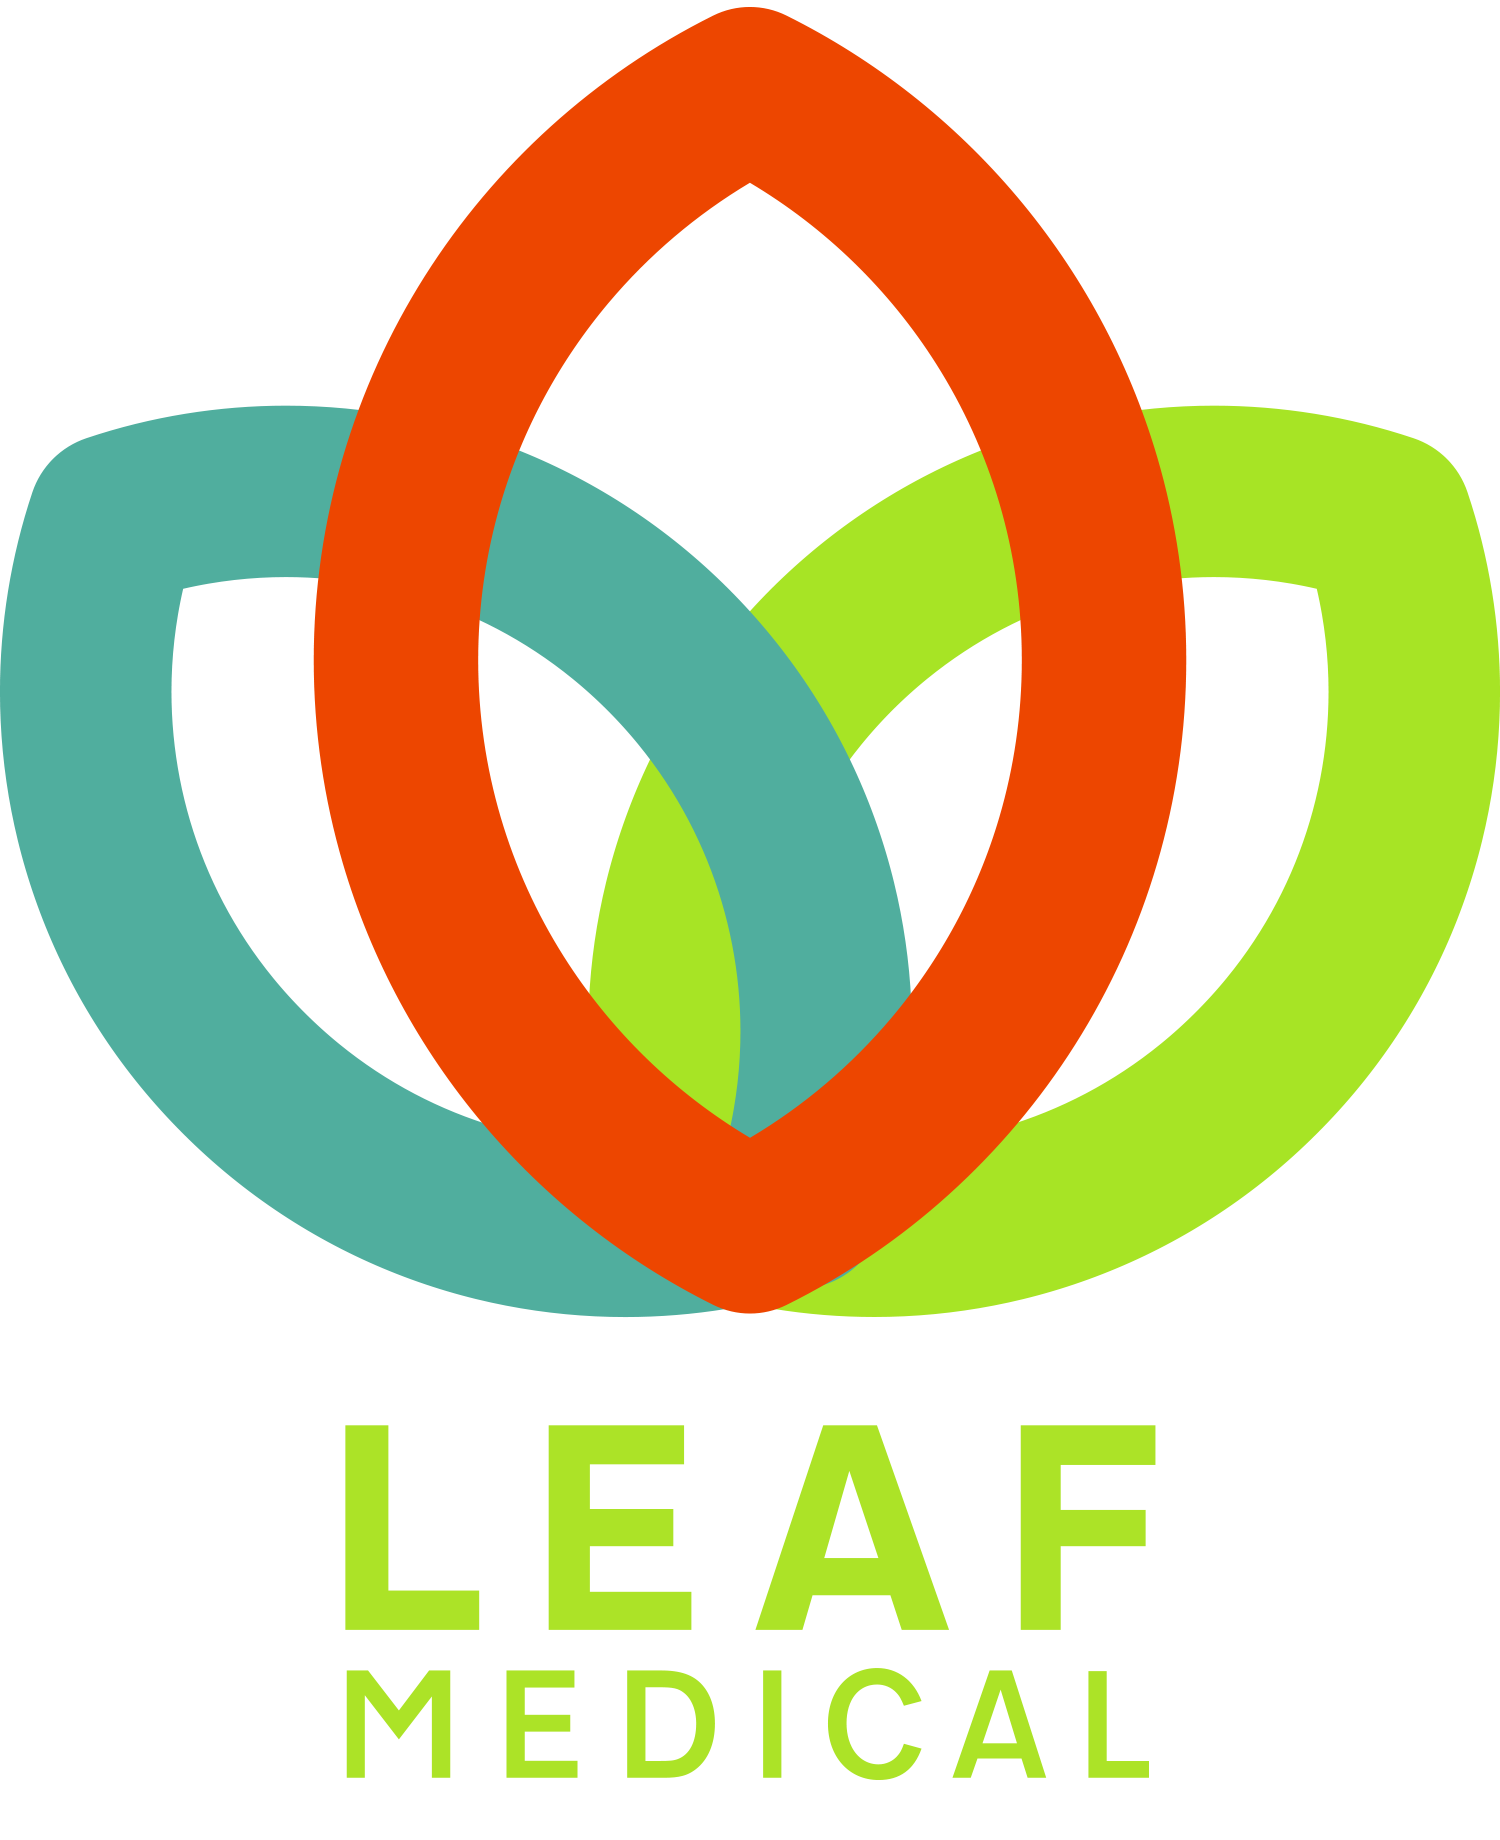 Leaf Medical | New York's Top Rated Doctors